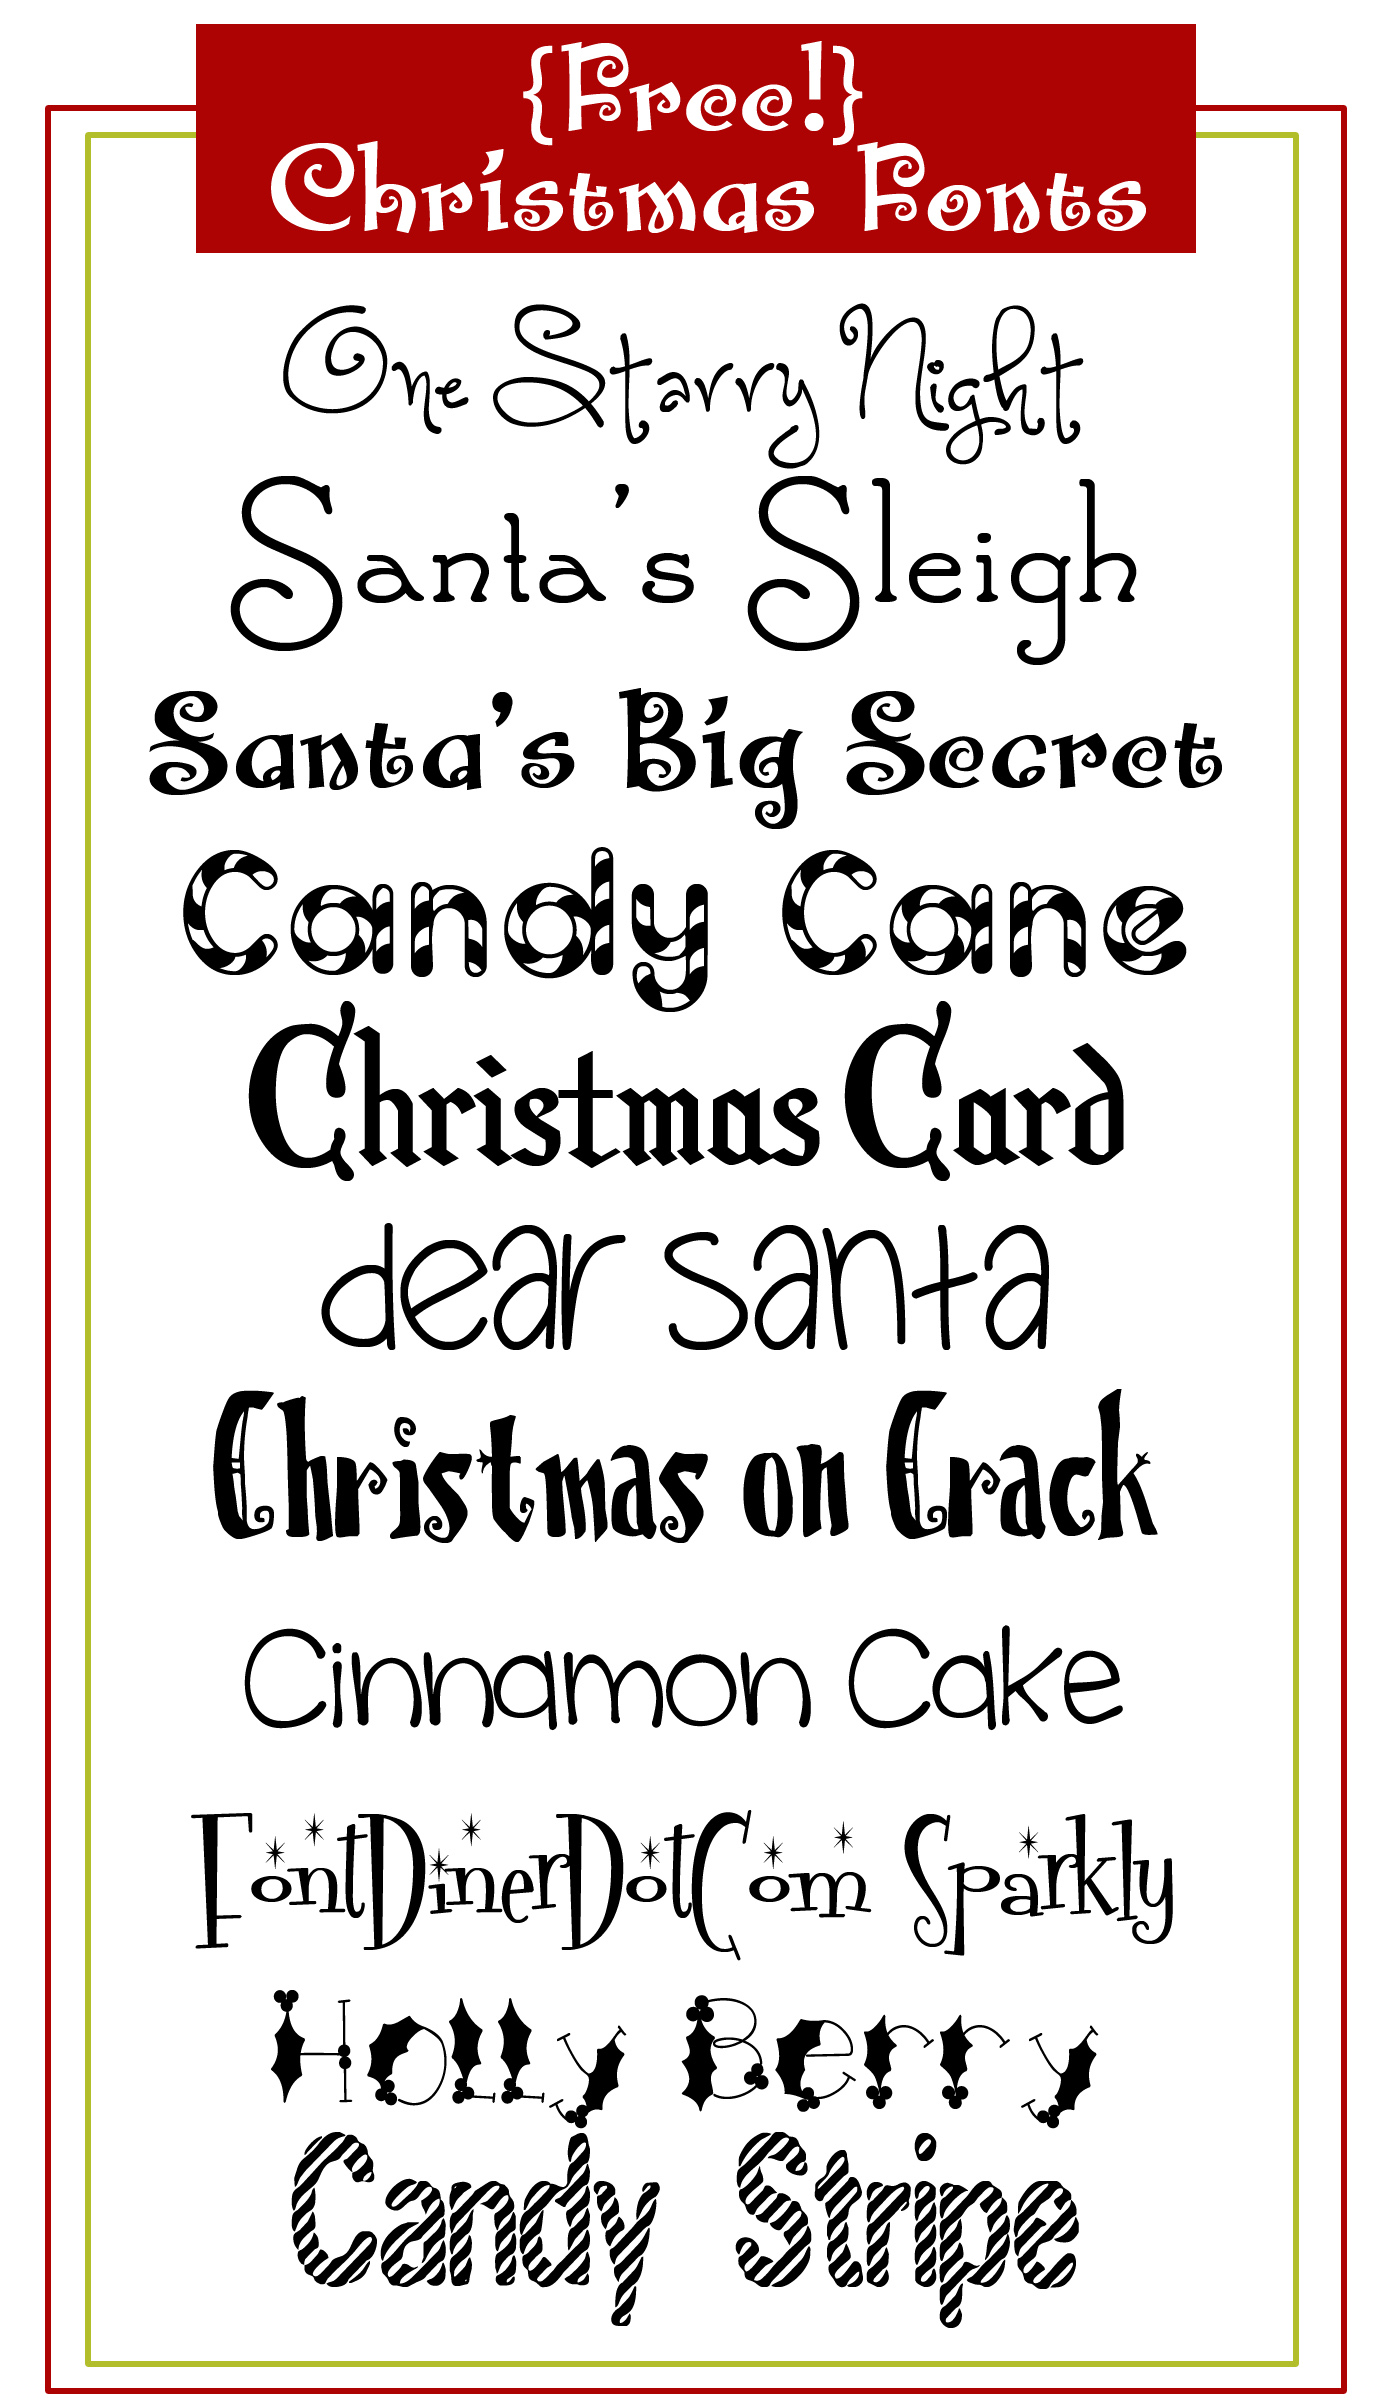 9 Christmas Font TrueType Images